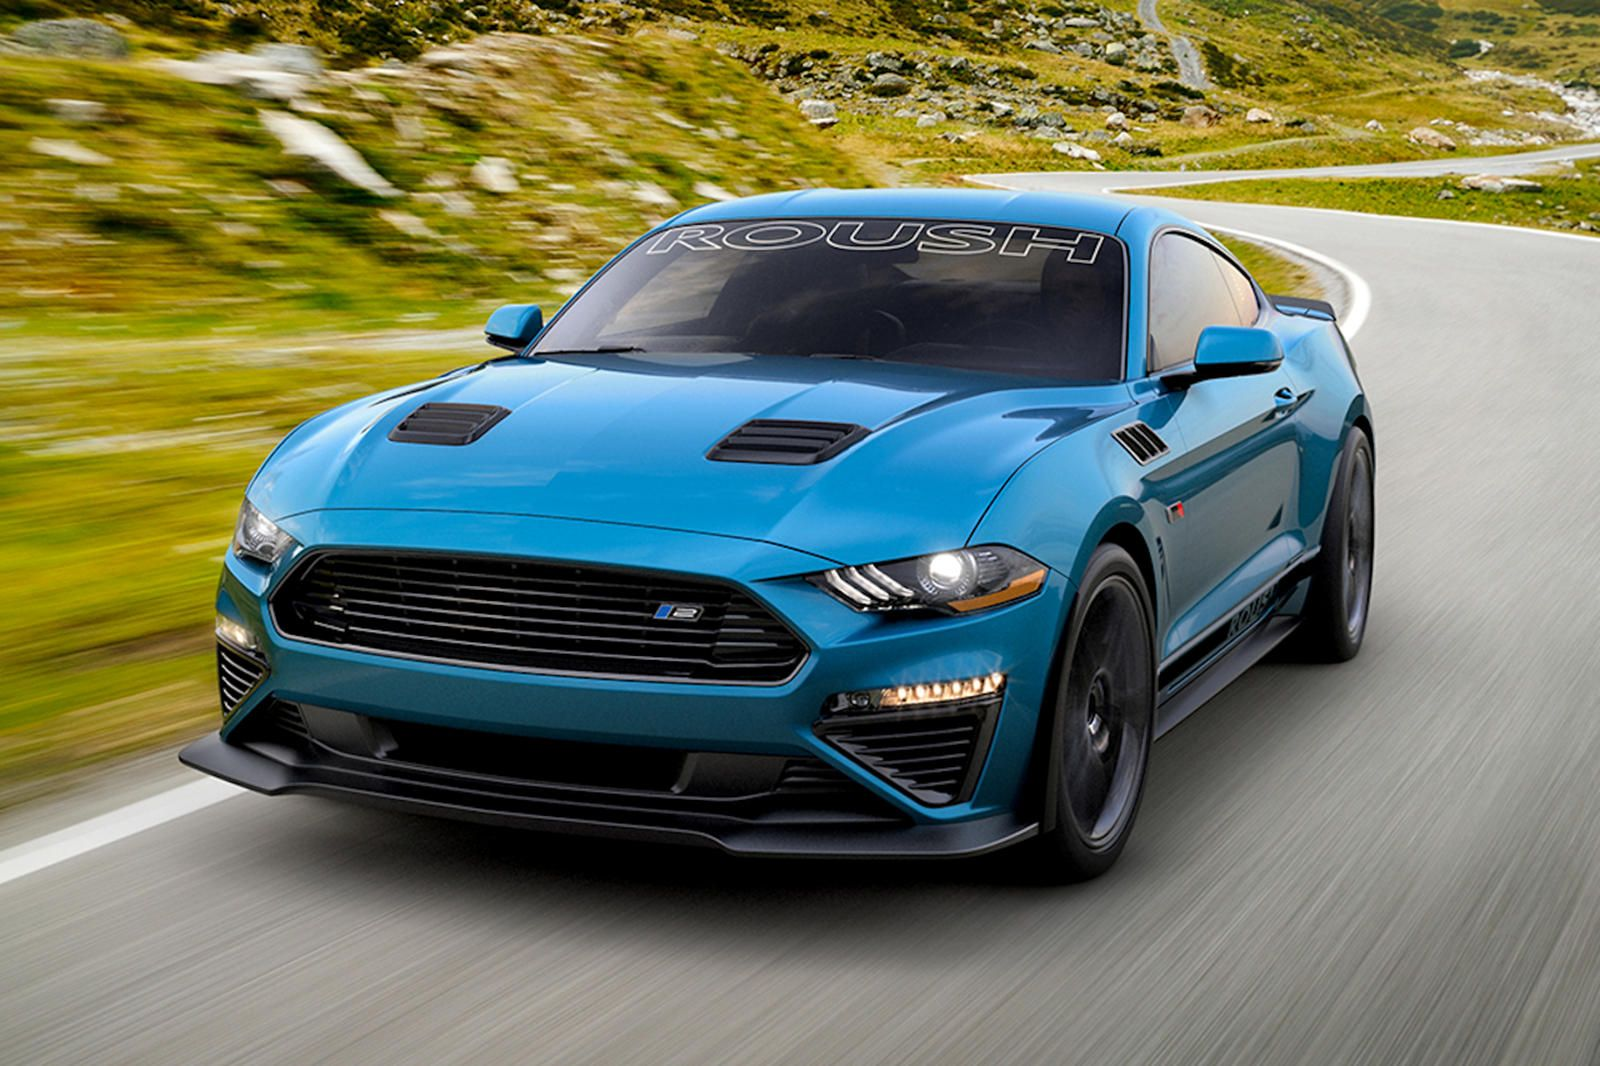 Say Hello To The 2020 Roush Stage 2 Mustang In 2020 Ford Mustang